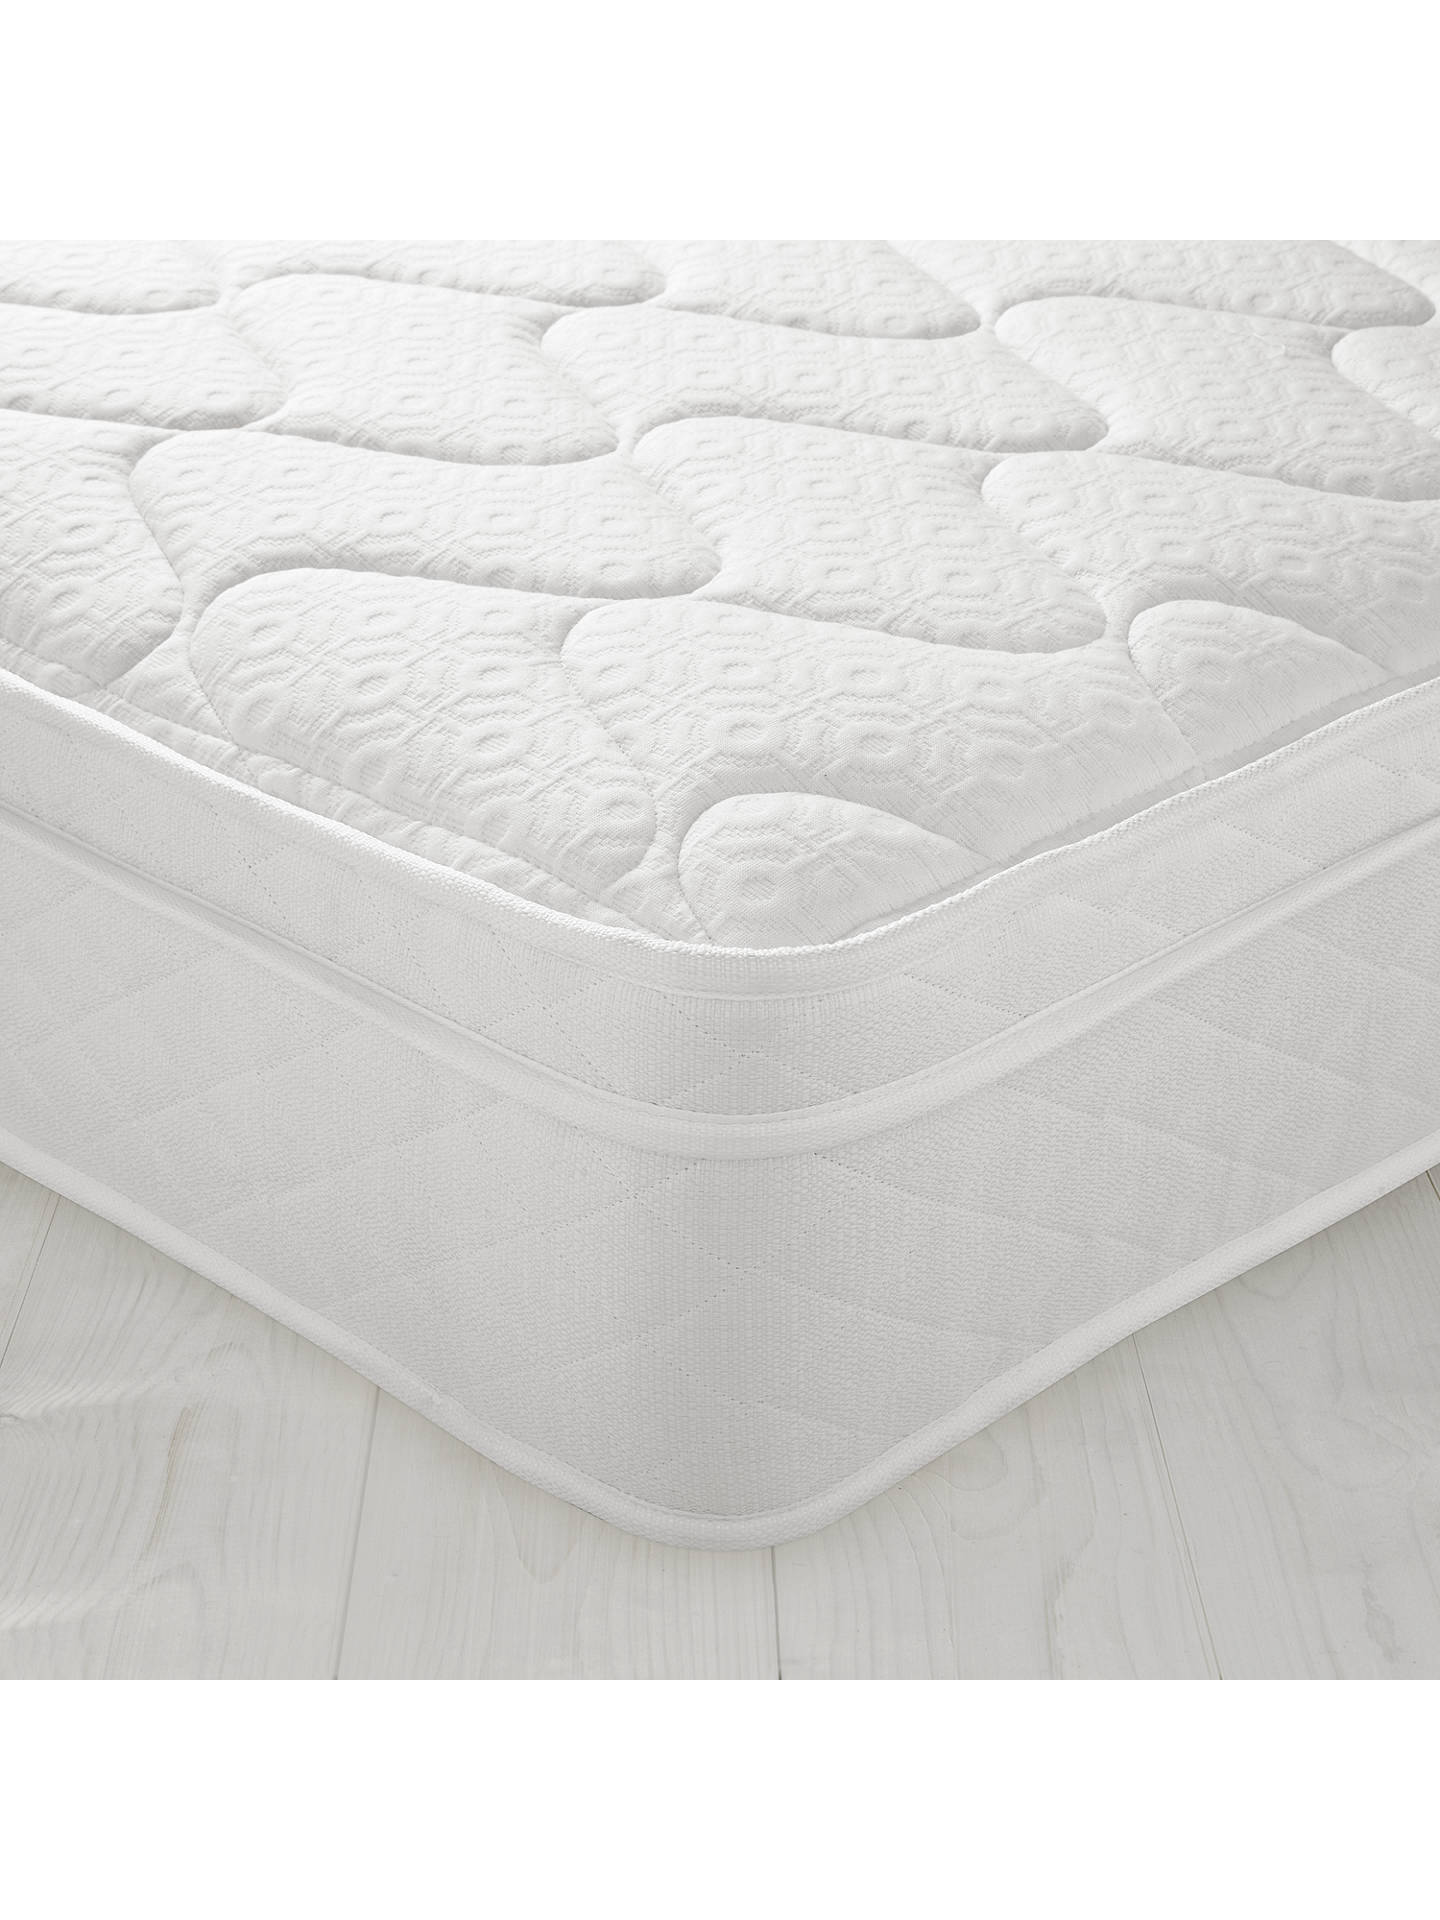 silentnight special ortho miracoil mattress double at. Black Bedroom Furniture Sets. Home Design Ideas